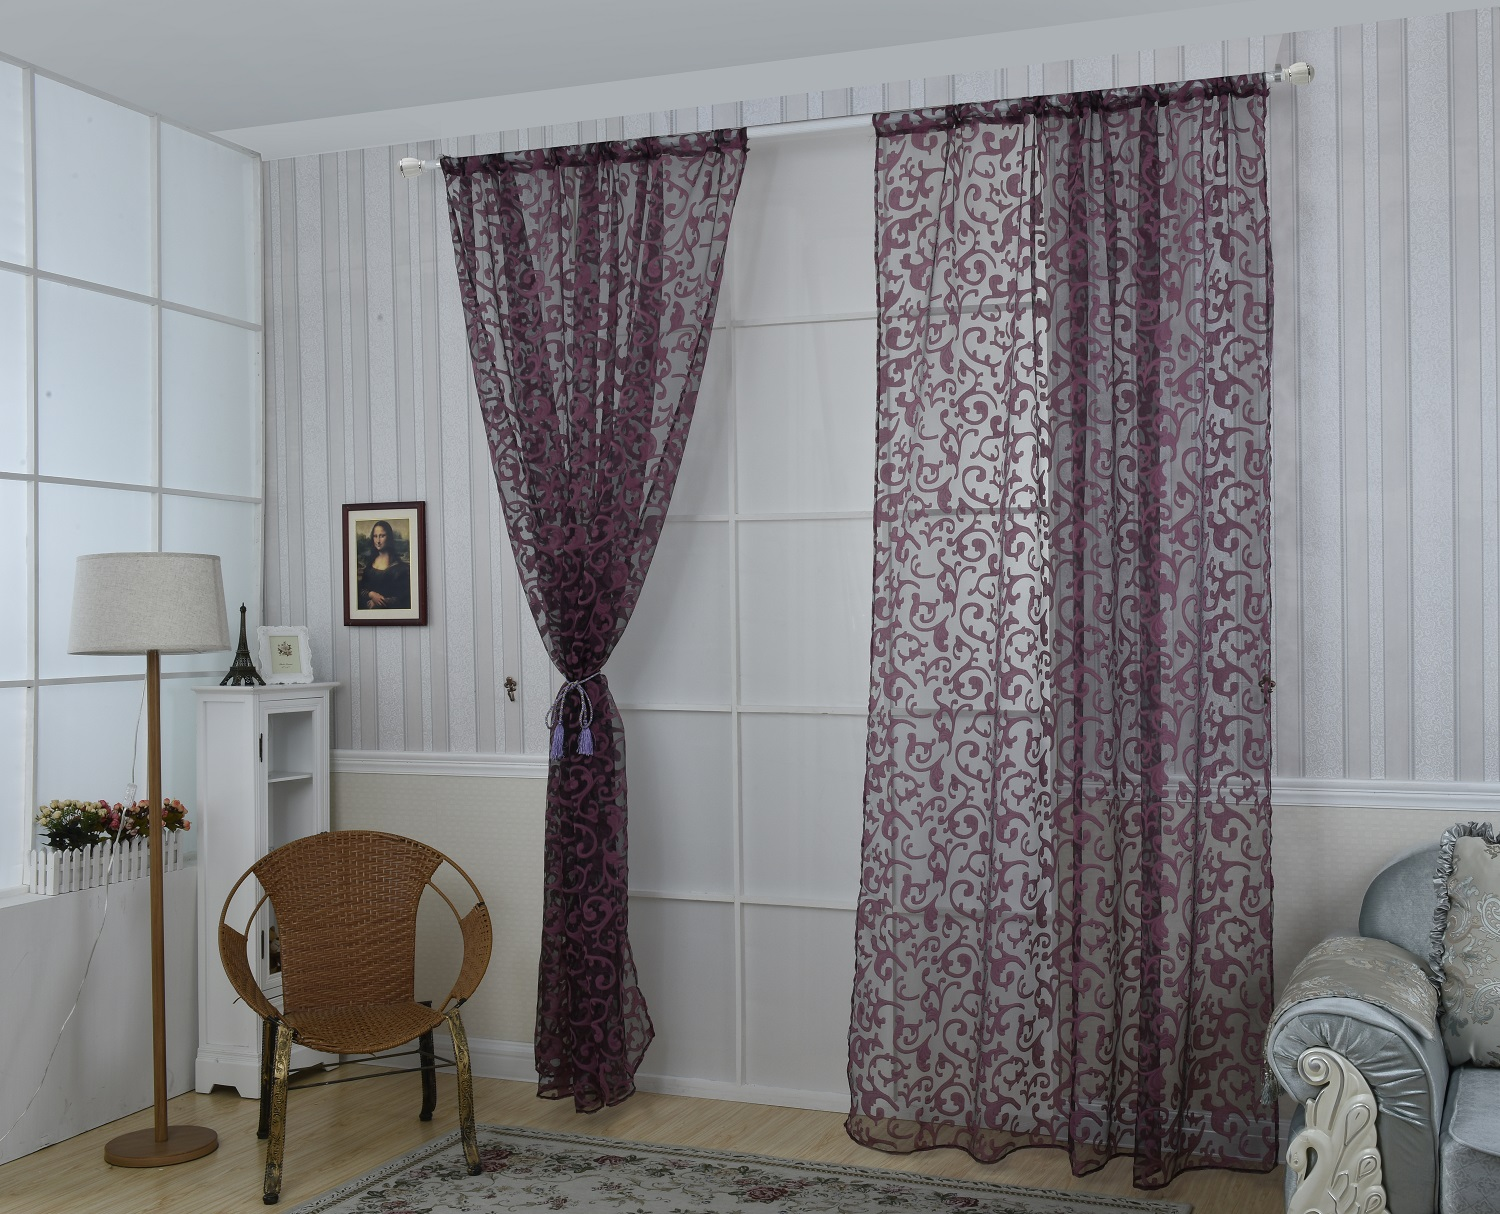 Honana WX-C9 1x2m Fashion European Style Voile Door Window Curtain Room Divider Sheer Curtain Home Decor